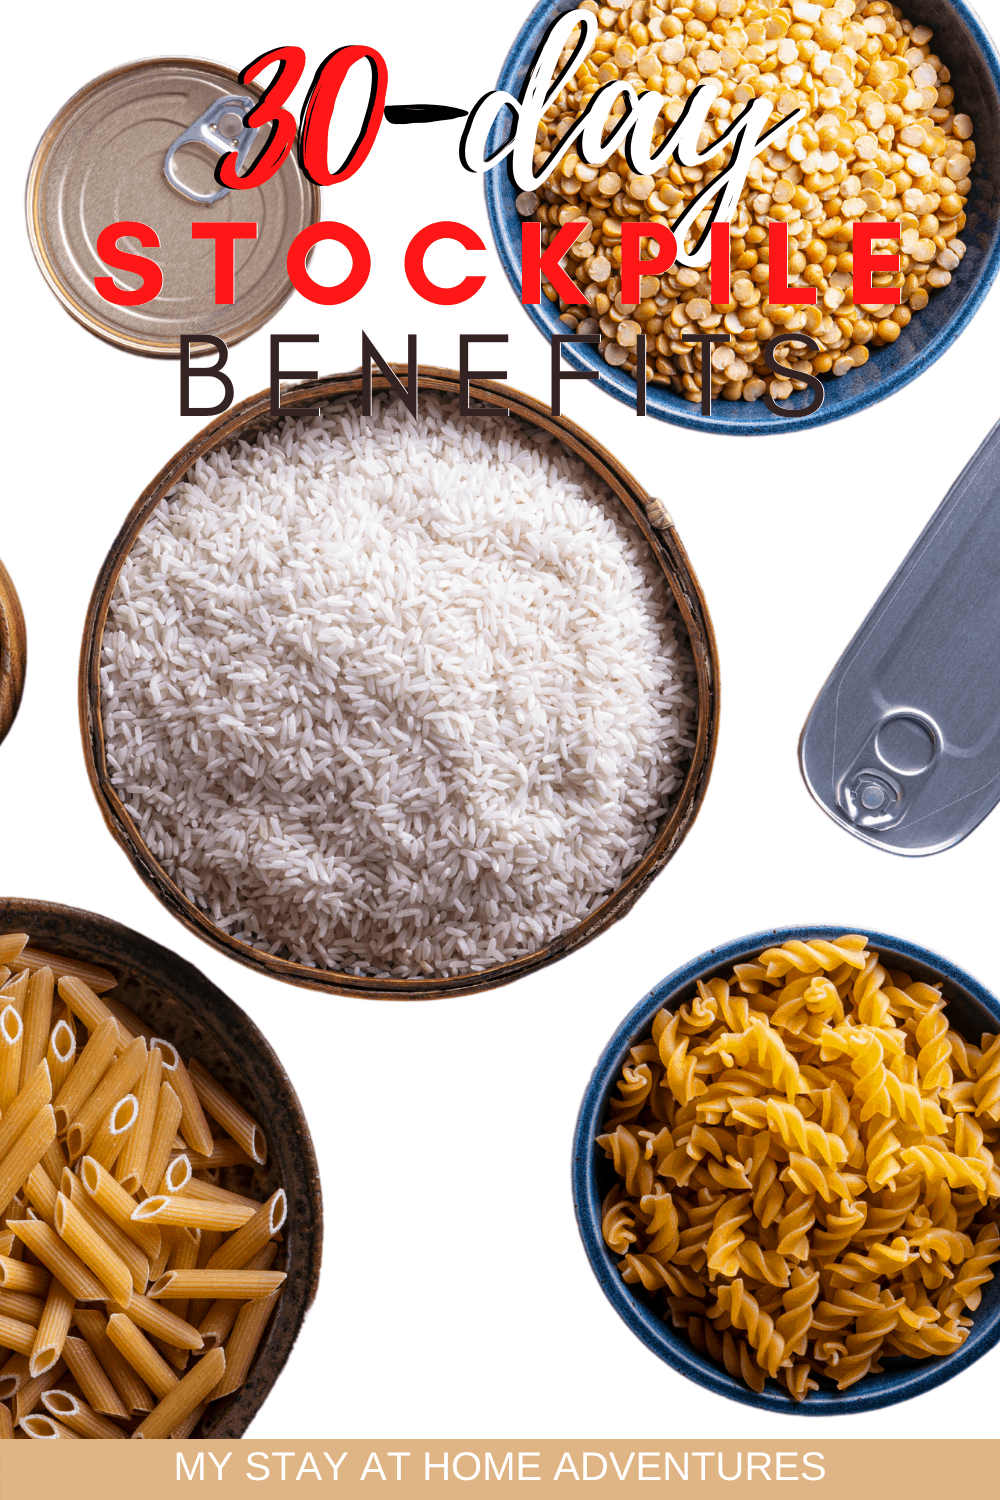 A 30-day stockpile is essential in every home. Learn Why is it so important to have a home stockpile and how to get started. via @mystayathome